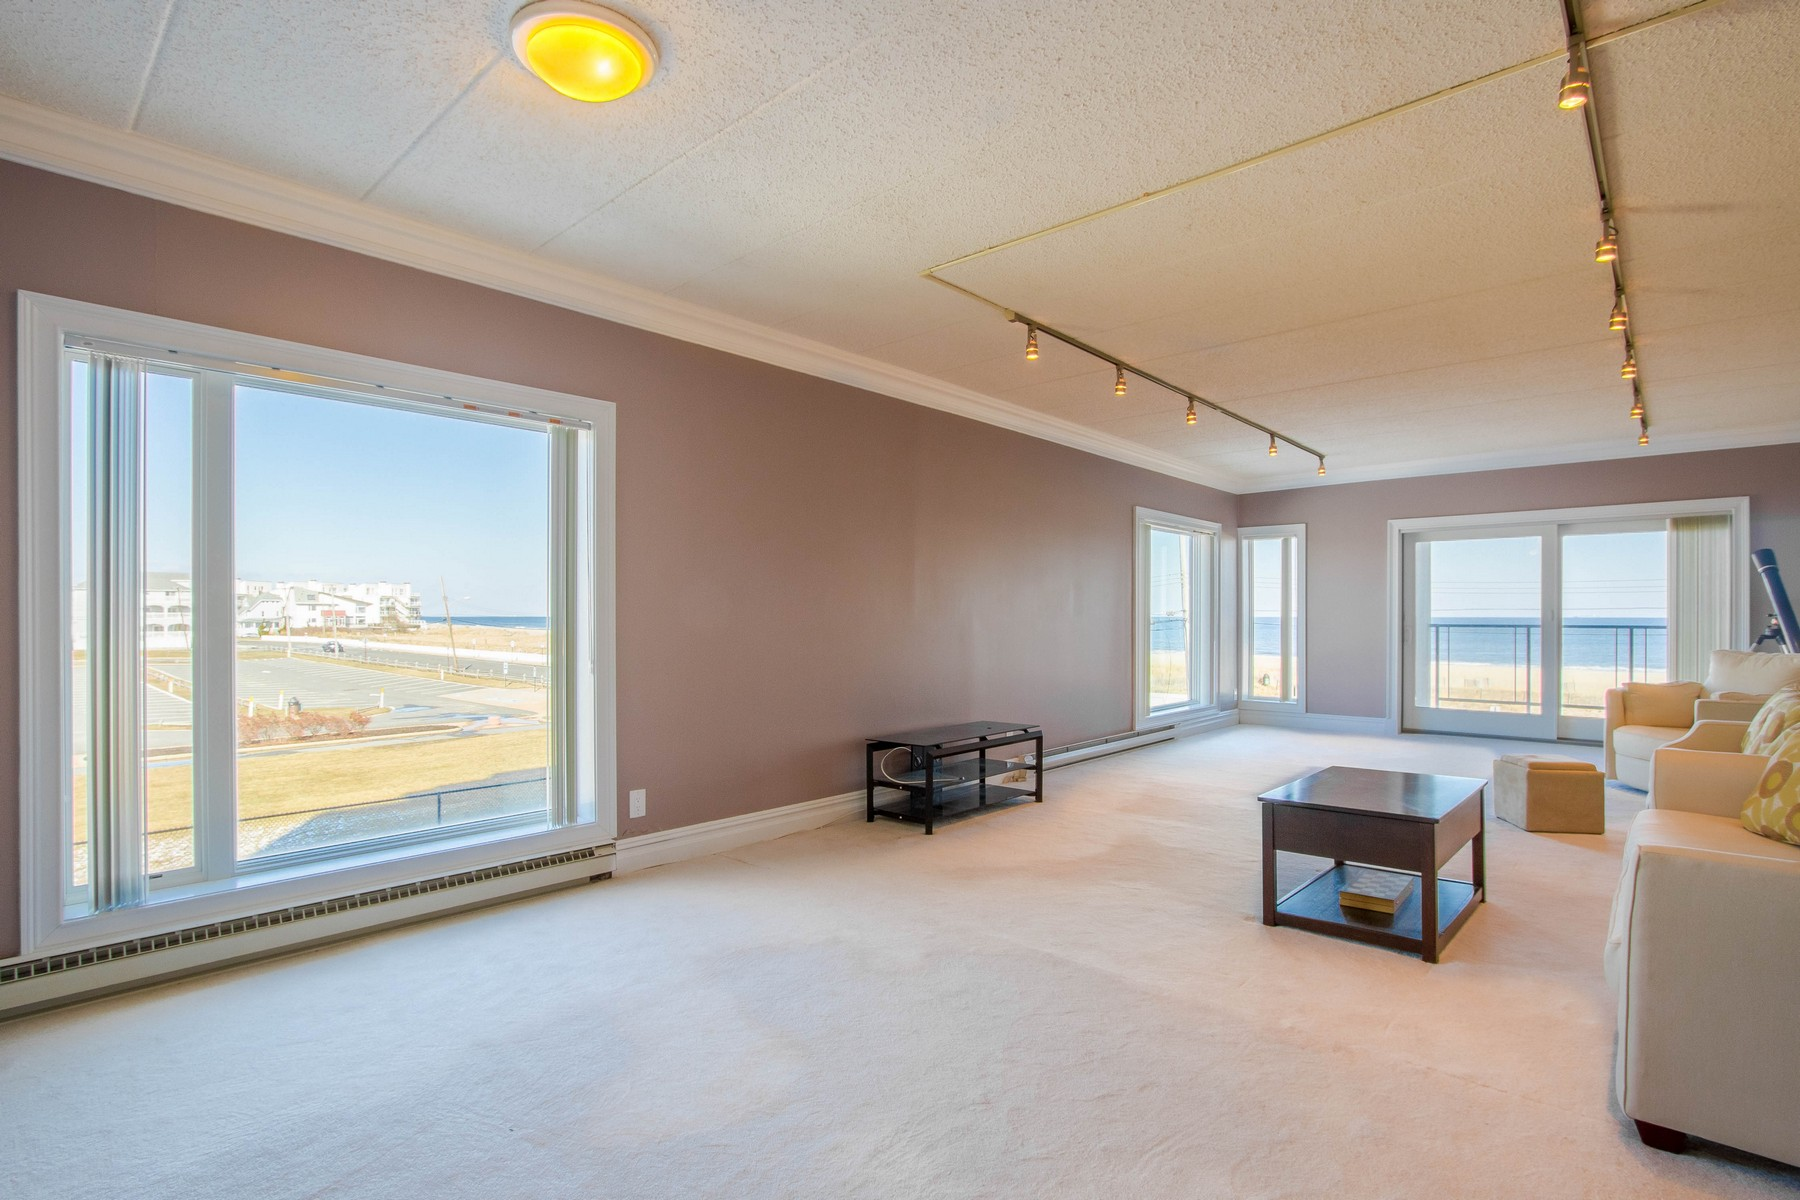 Appartement en copropriété pour l Vente à LIVE THE OCEANFRONT DREAM 388 N Ocean Ave #2A, Long Branch, New Jersey 07740 États-Unis